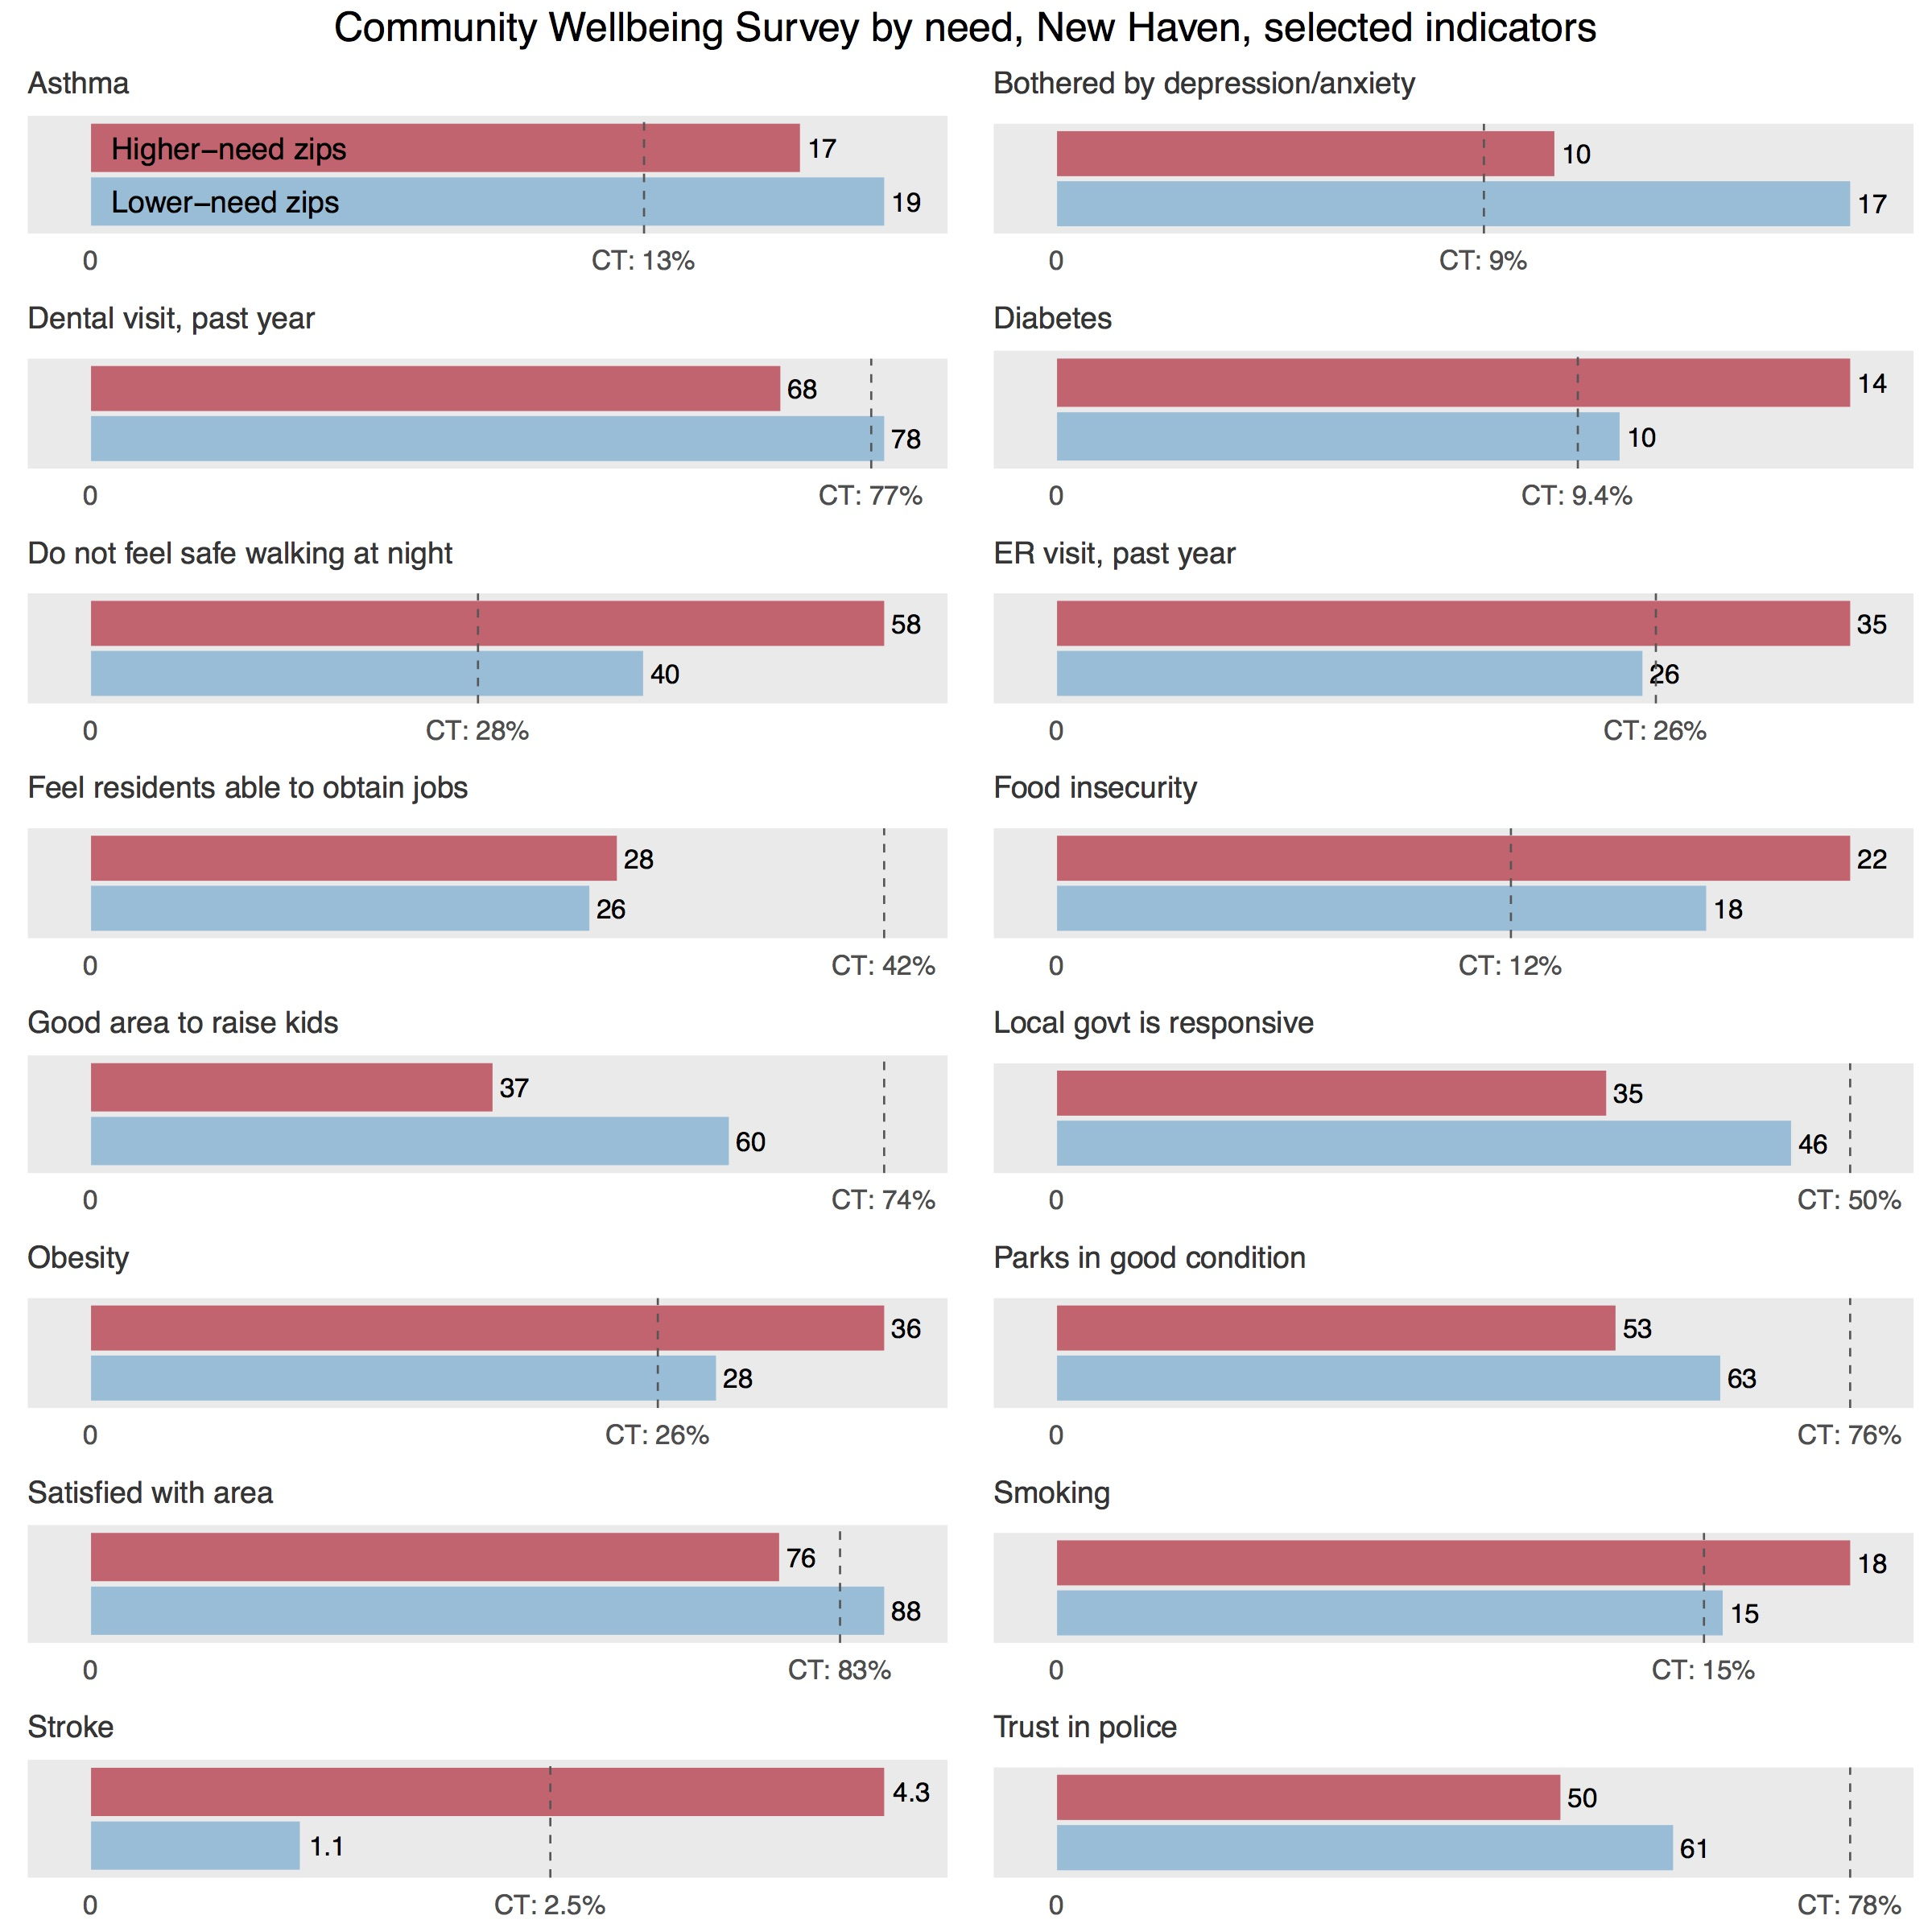 Community Wellbeing Survey by zip code New Haven Connecticut Data